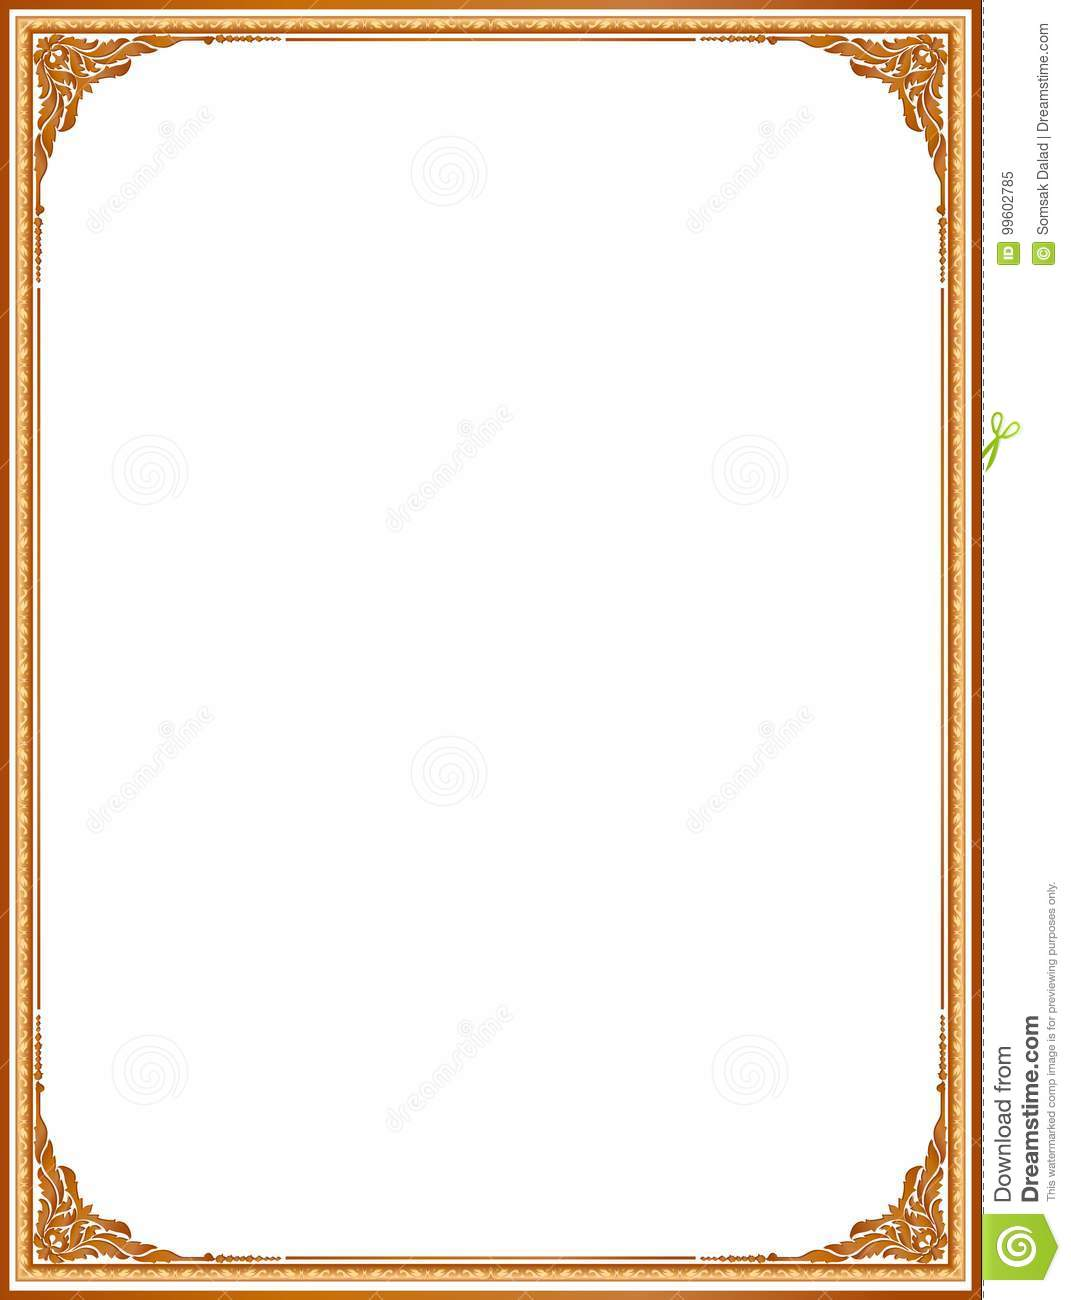 gold frame border design. Gold Photo Frame With Corner Thailand Line Floral For Picture, Vector Design  Decoration Pattern Style.frame Border Is Thai Style Gold R